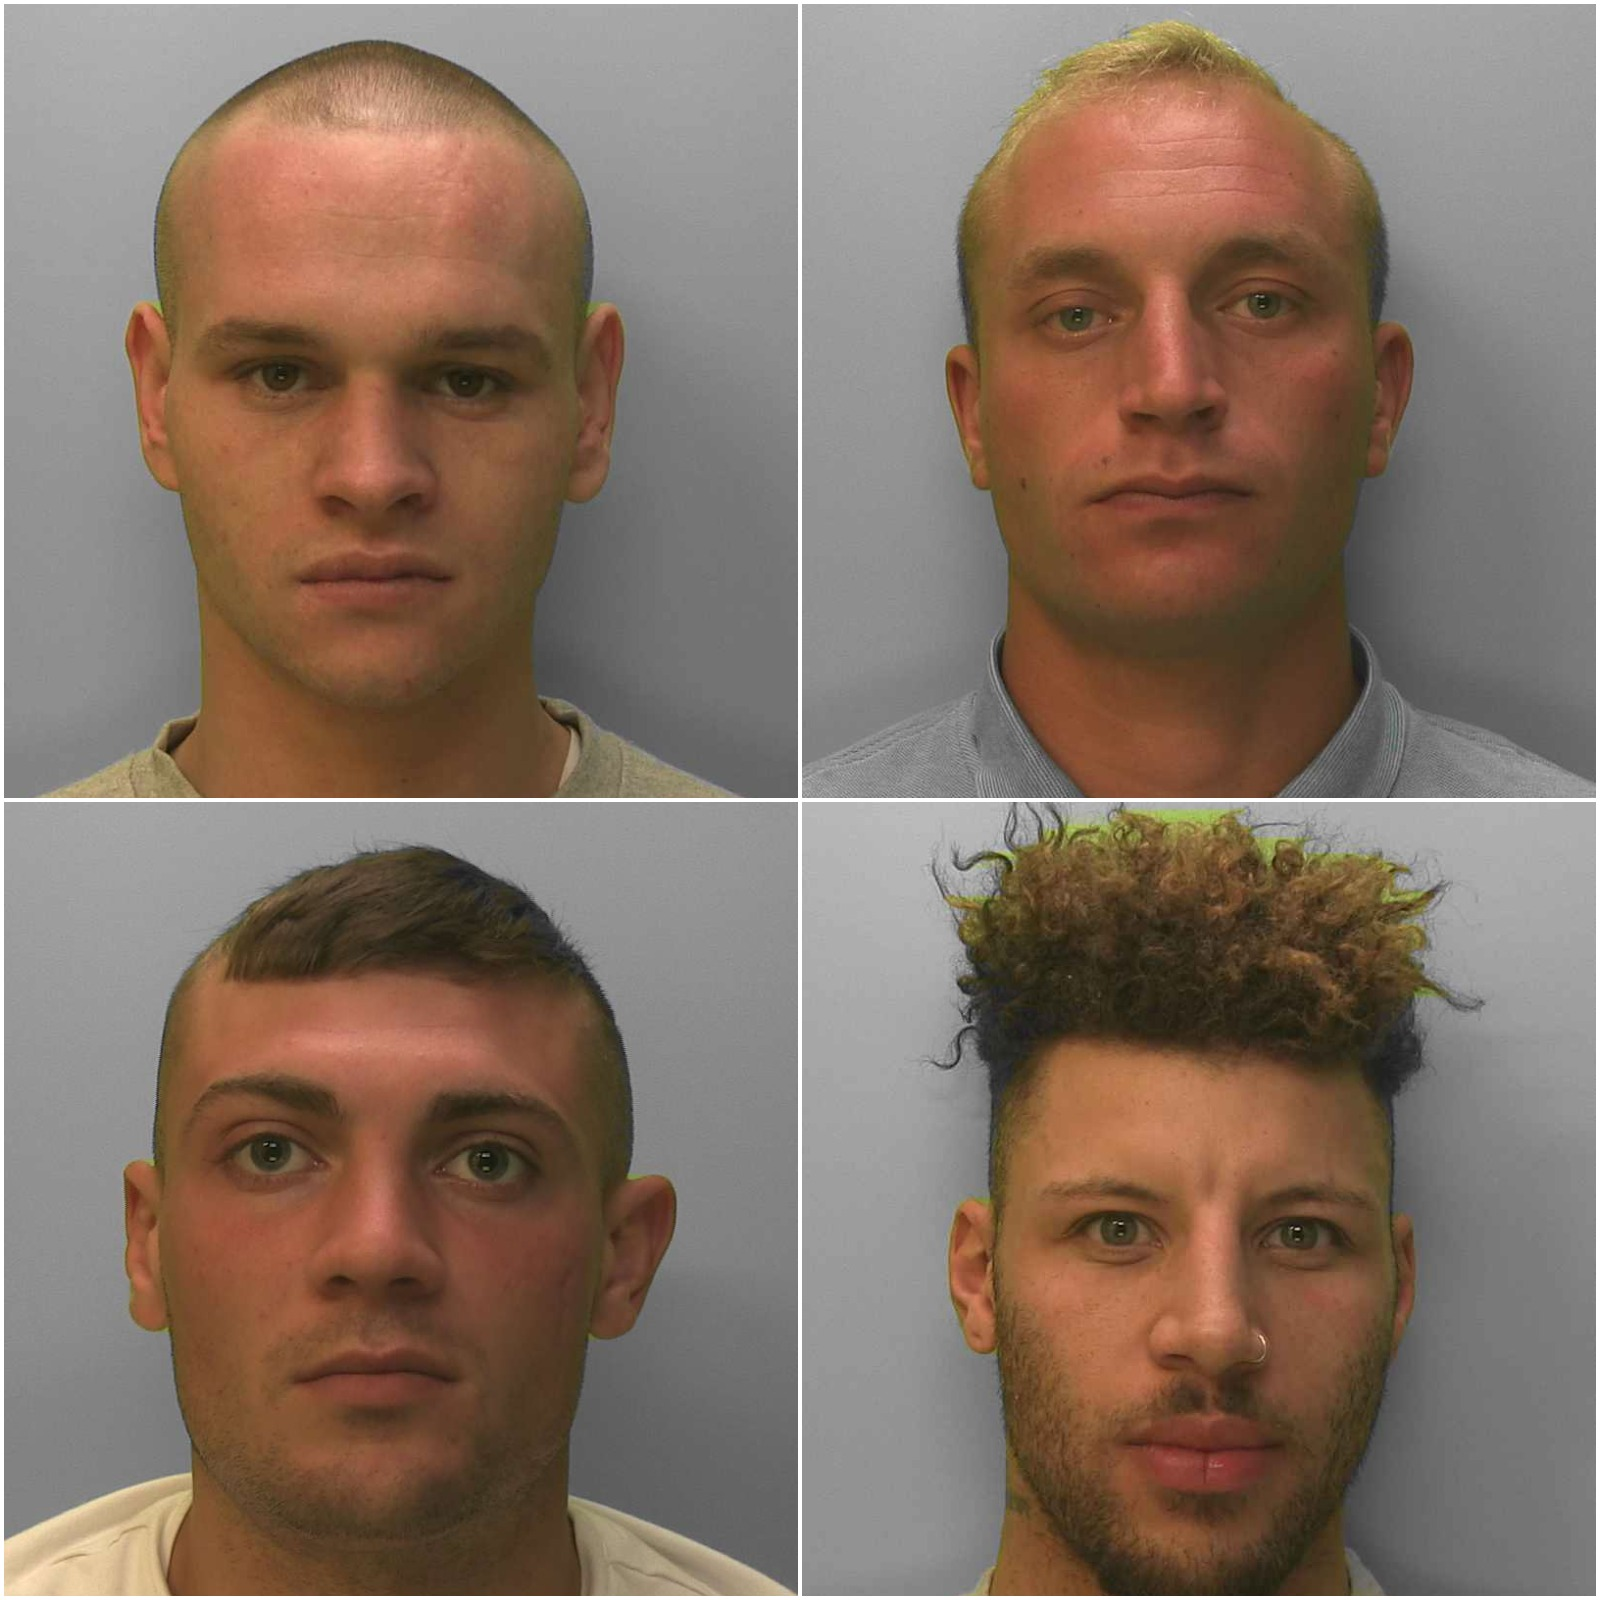 The gang have been jailed for their brutal attack in Durrington, Worthing